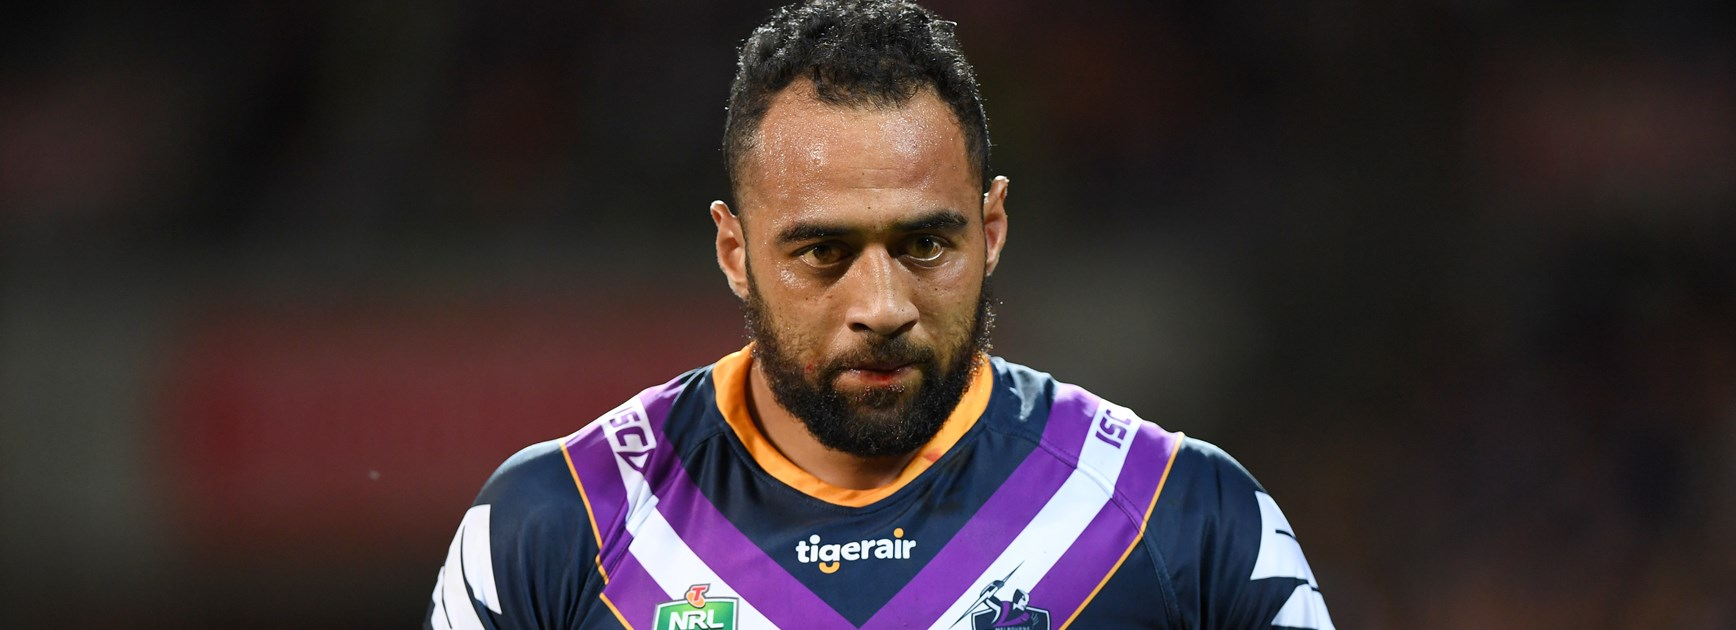 Kasiano sidelined with knee injury